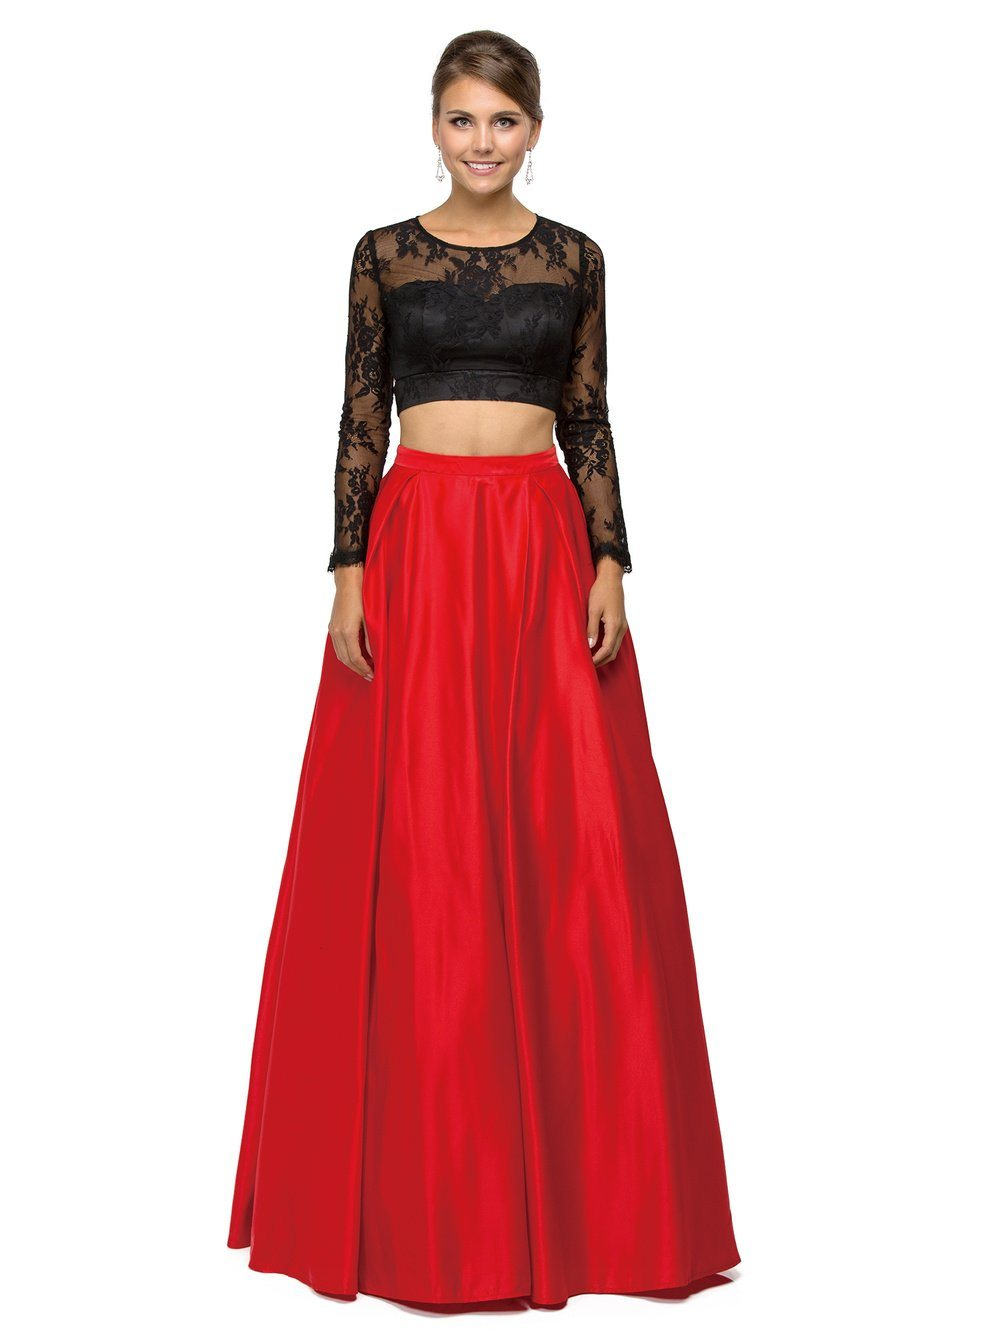 Crop Top Prom Gowns